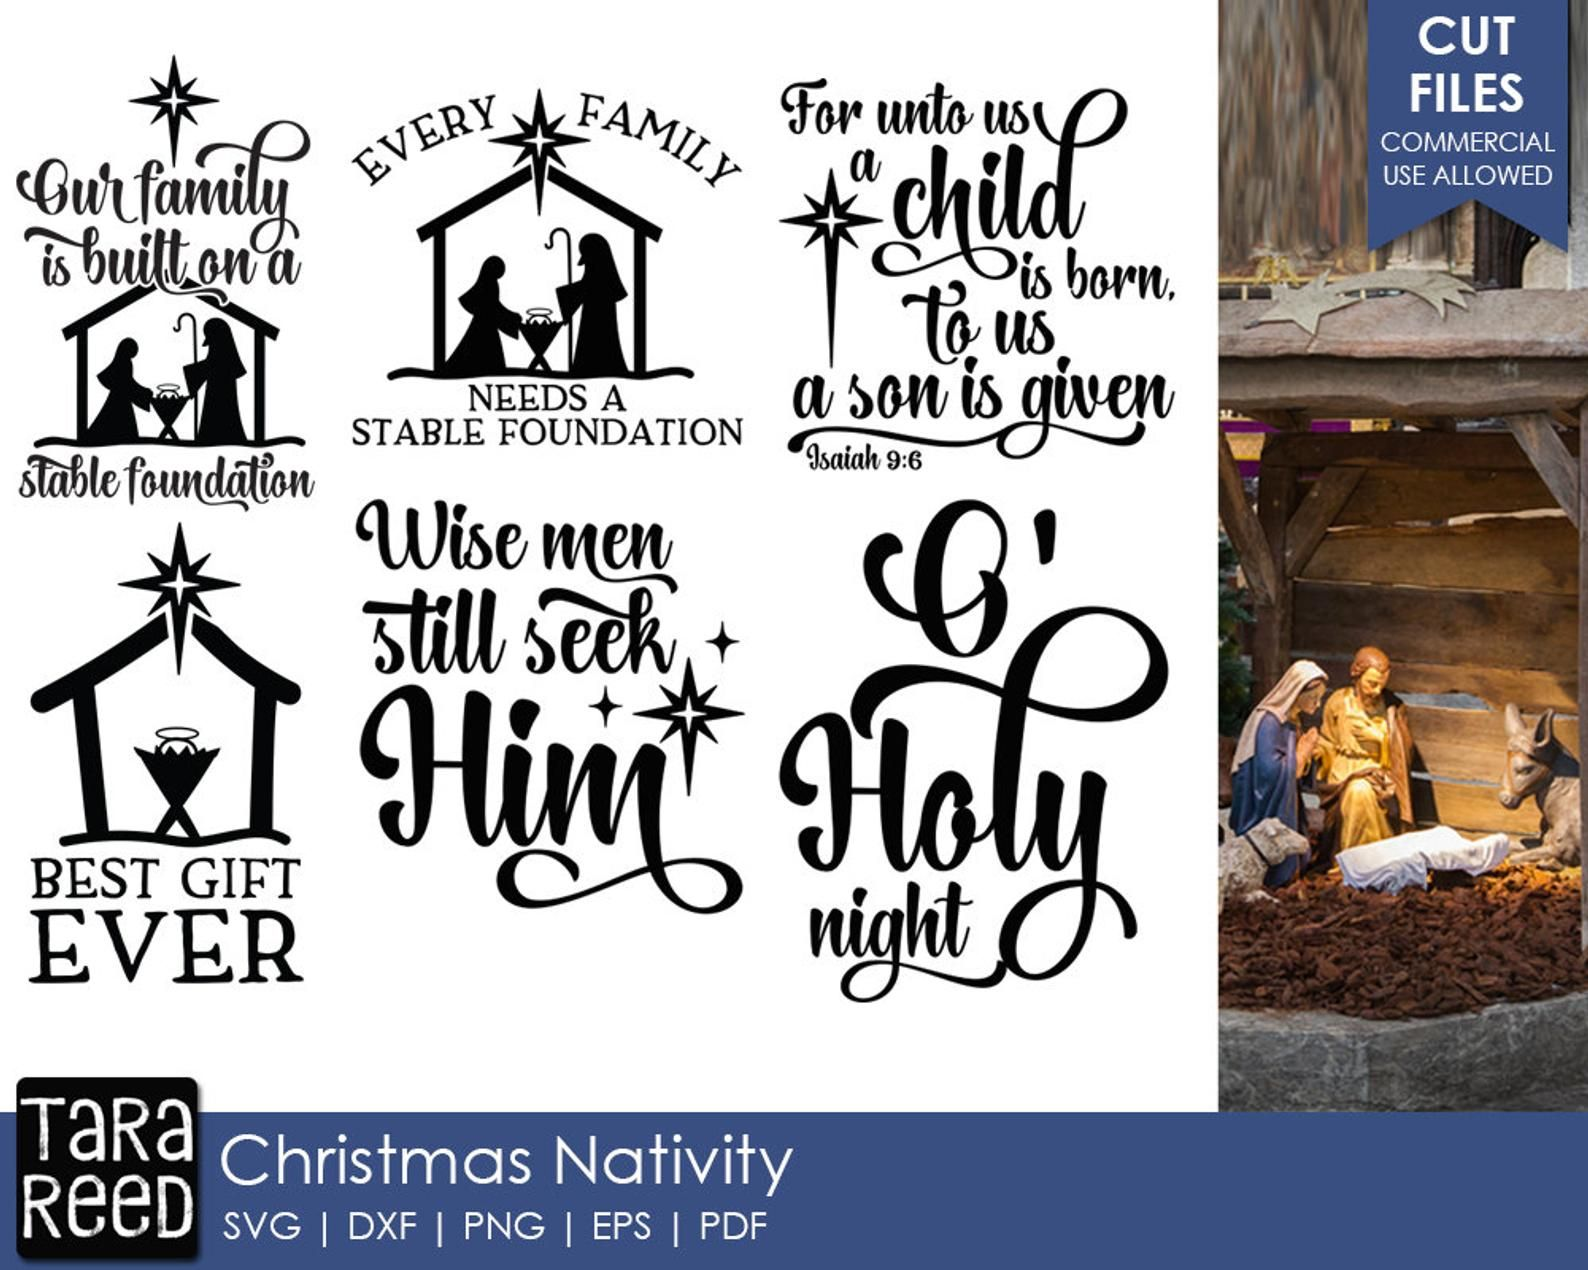 Christmas Nativity - Christmas SVG and Cut Files for Crafters